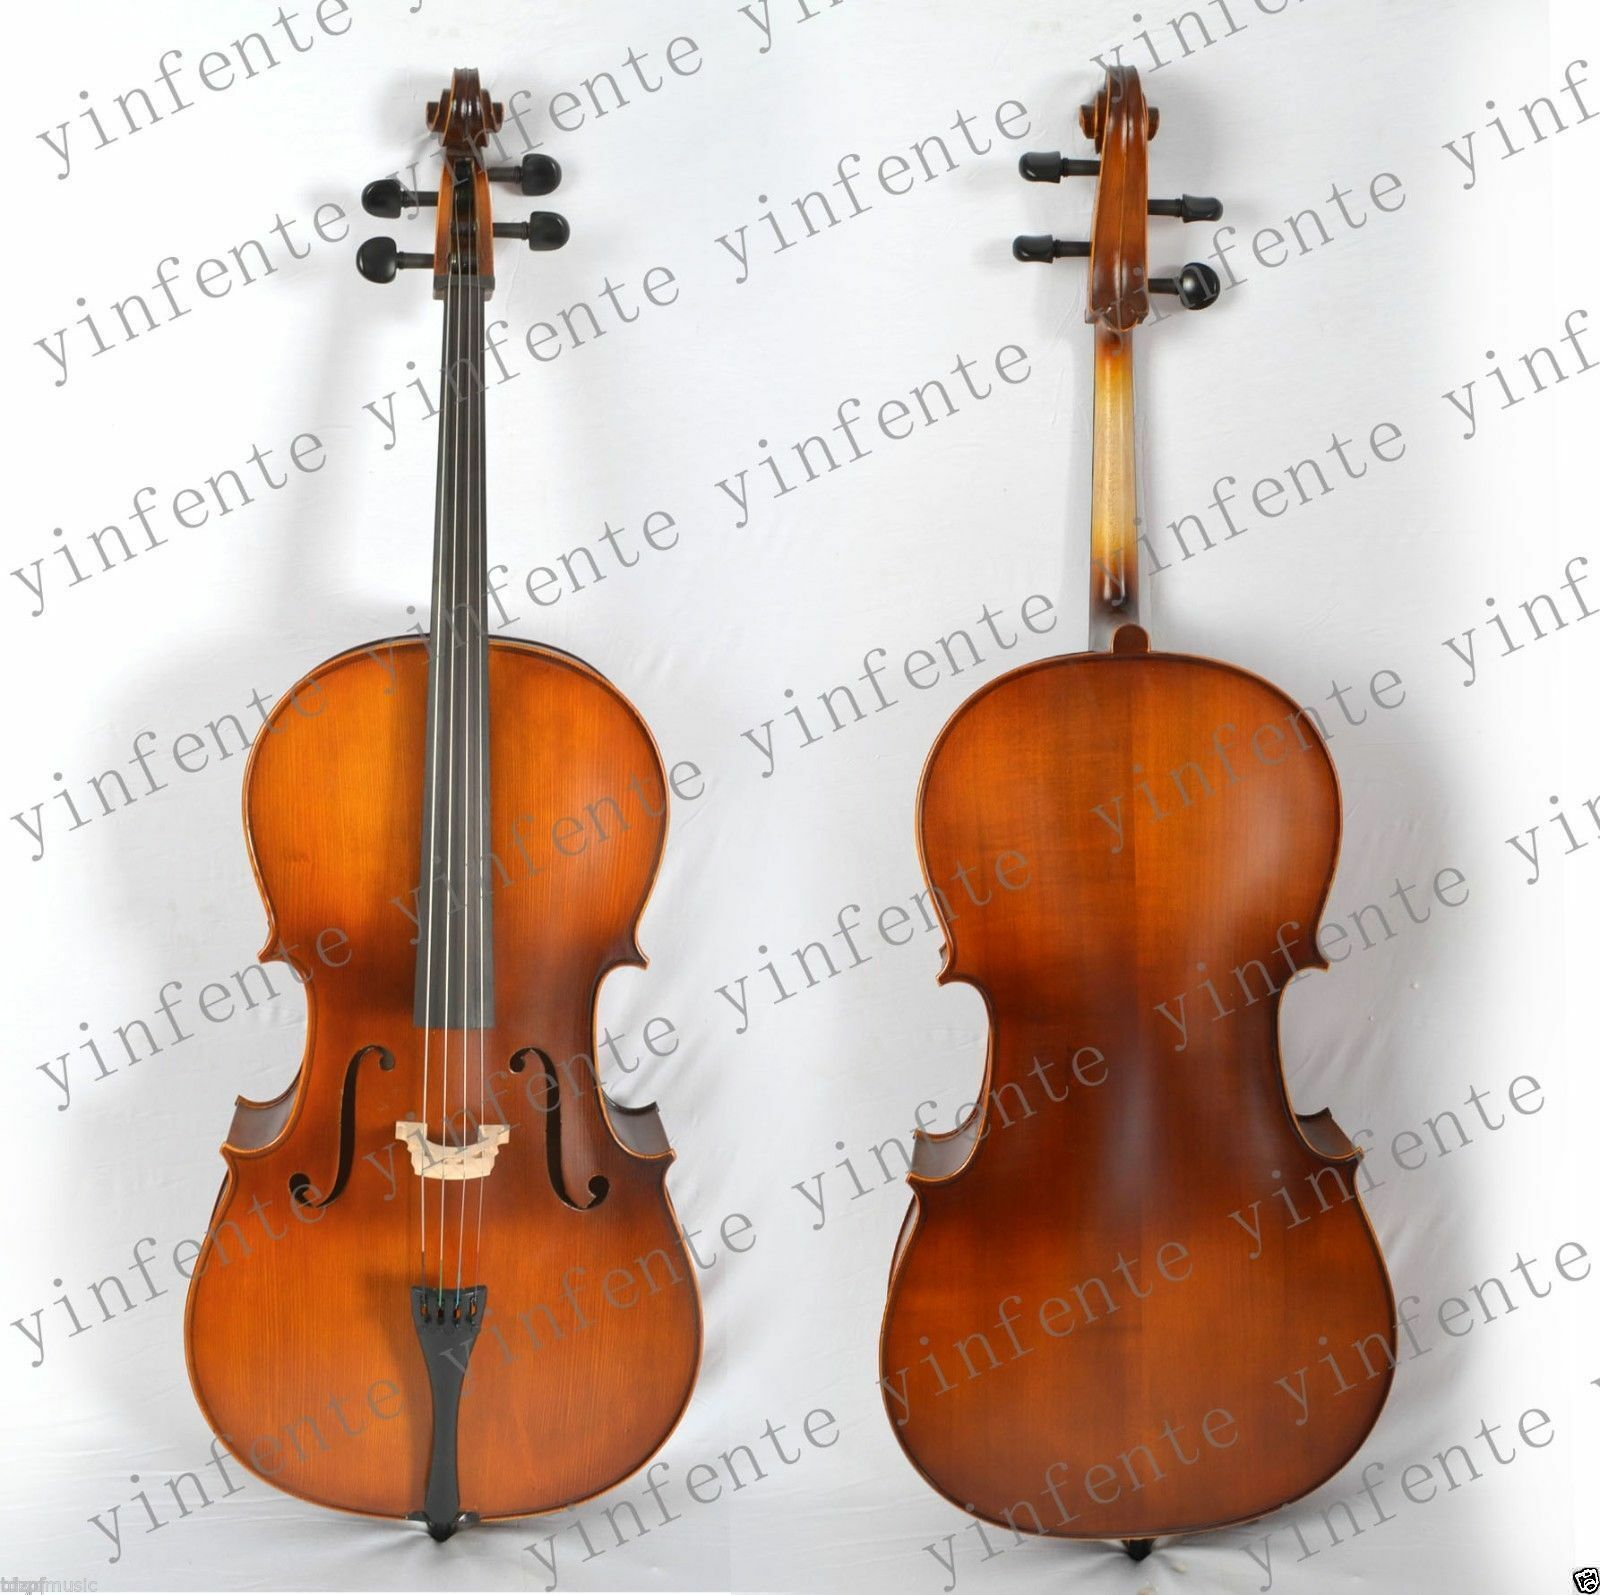 Yinfente full size Cello Fine Tone Hand Carve Solid wood New 4 4 Maple Spruce